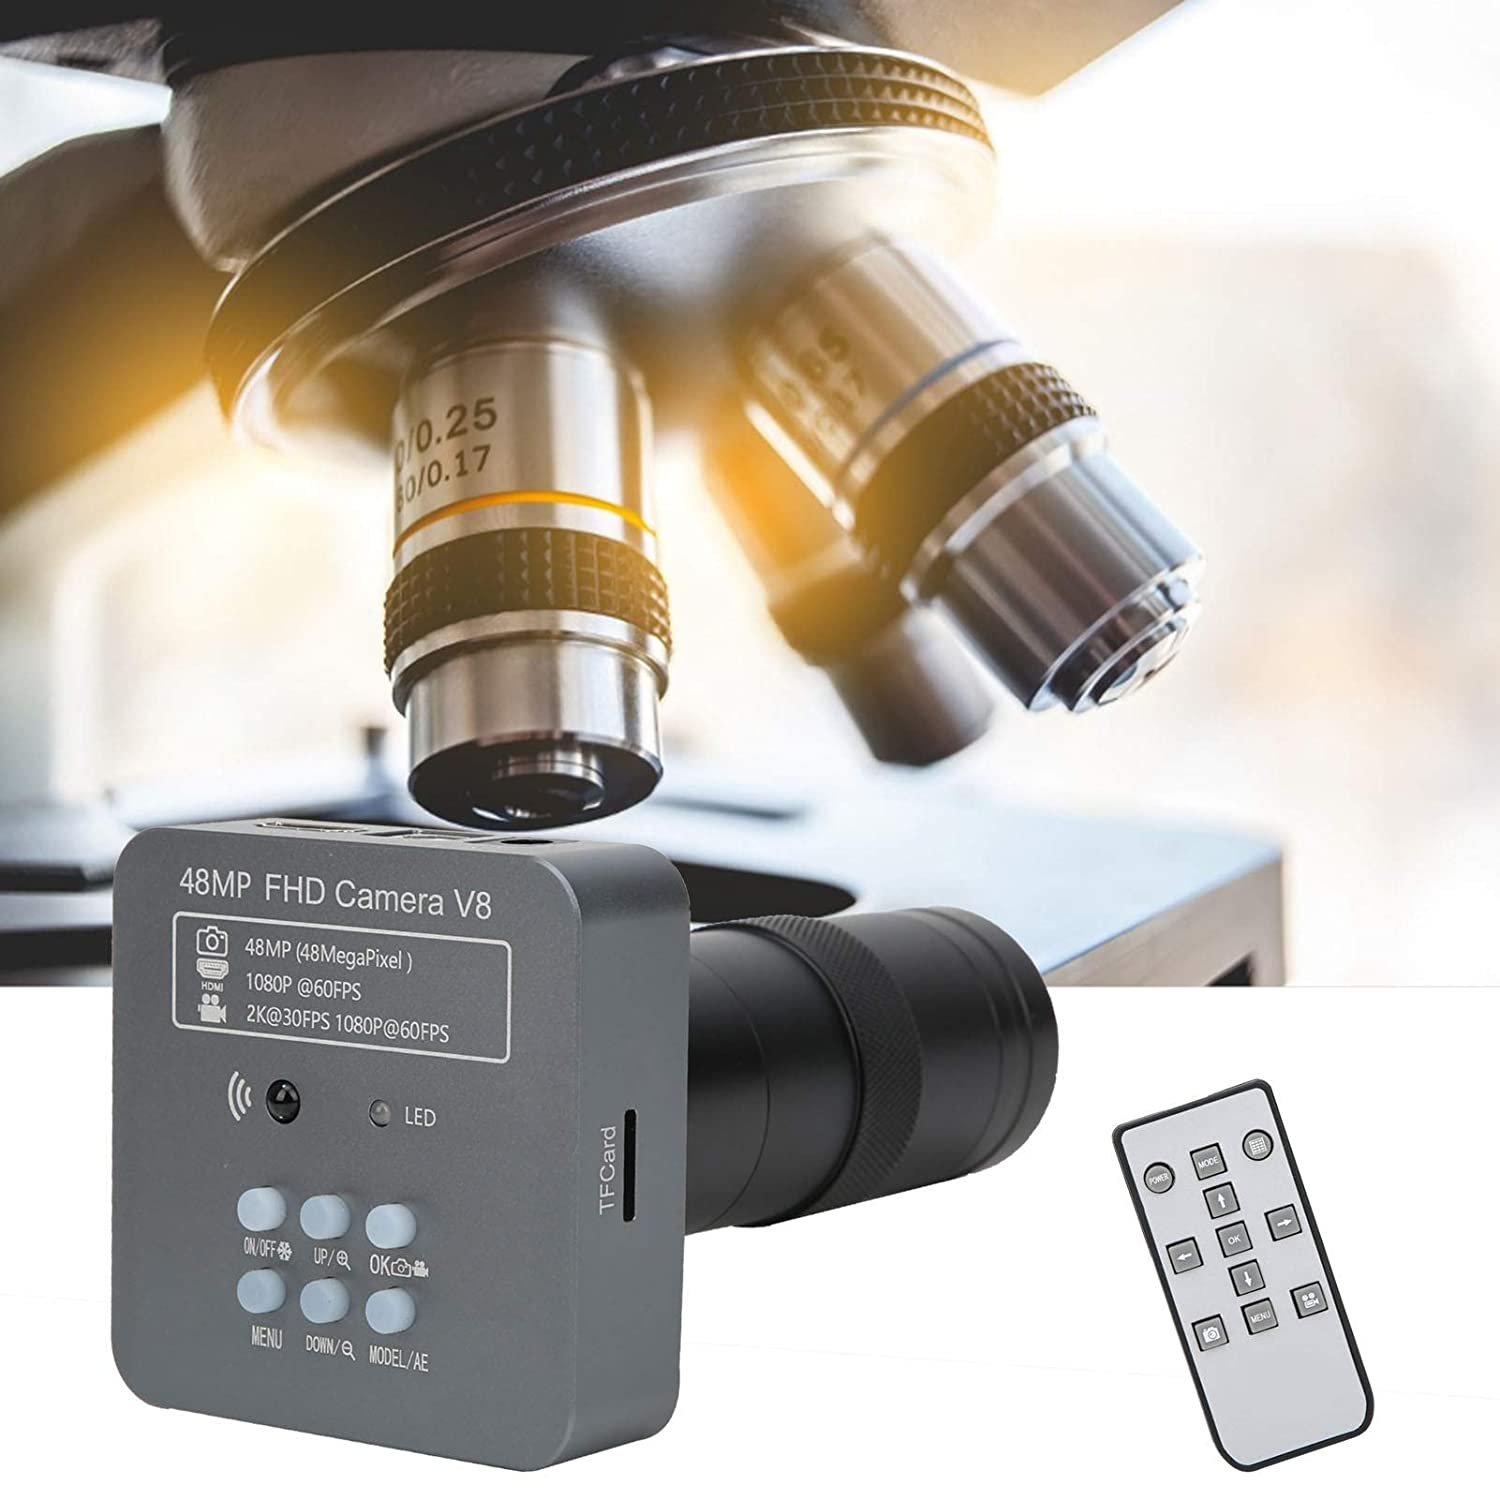 Precise Structure Widely Used for Microelectronics Precise Machinery Jewelry Molds U.S. regulations High Performance Camera Lens Digital Camera Lens